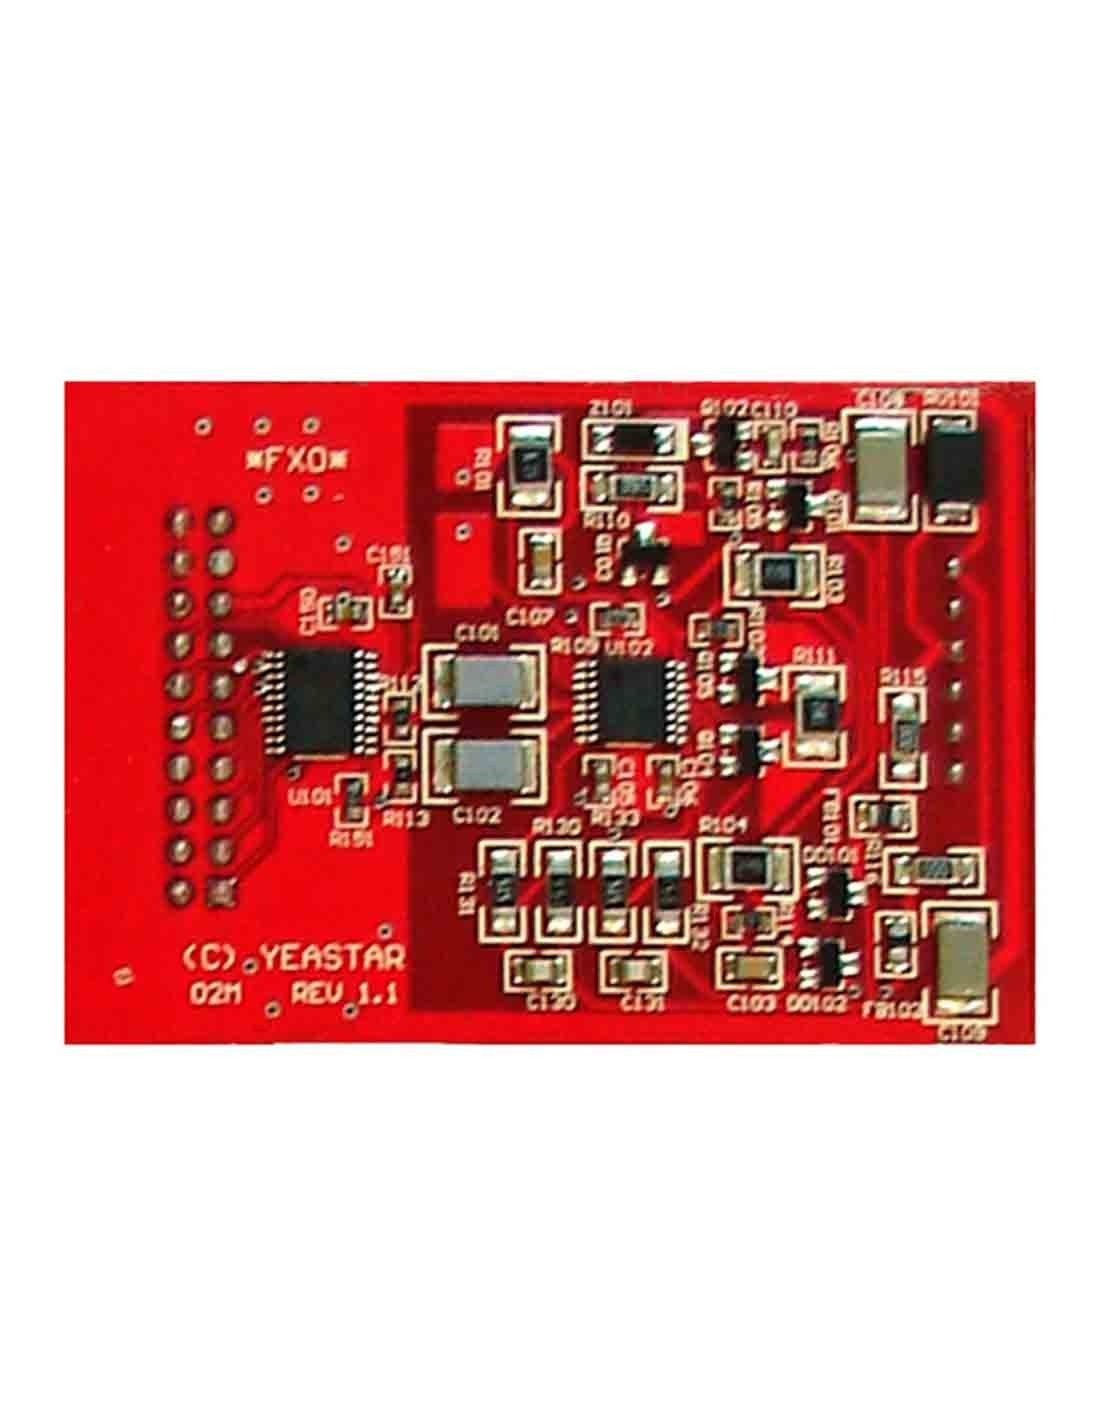 Yeastar O2 Module (2 FXO Ports) YST-O2 at a cheap price and free delivery in Dubai UAE